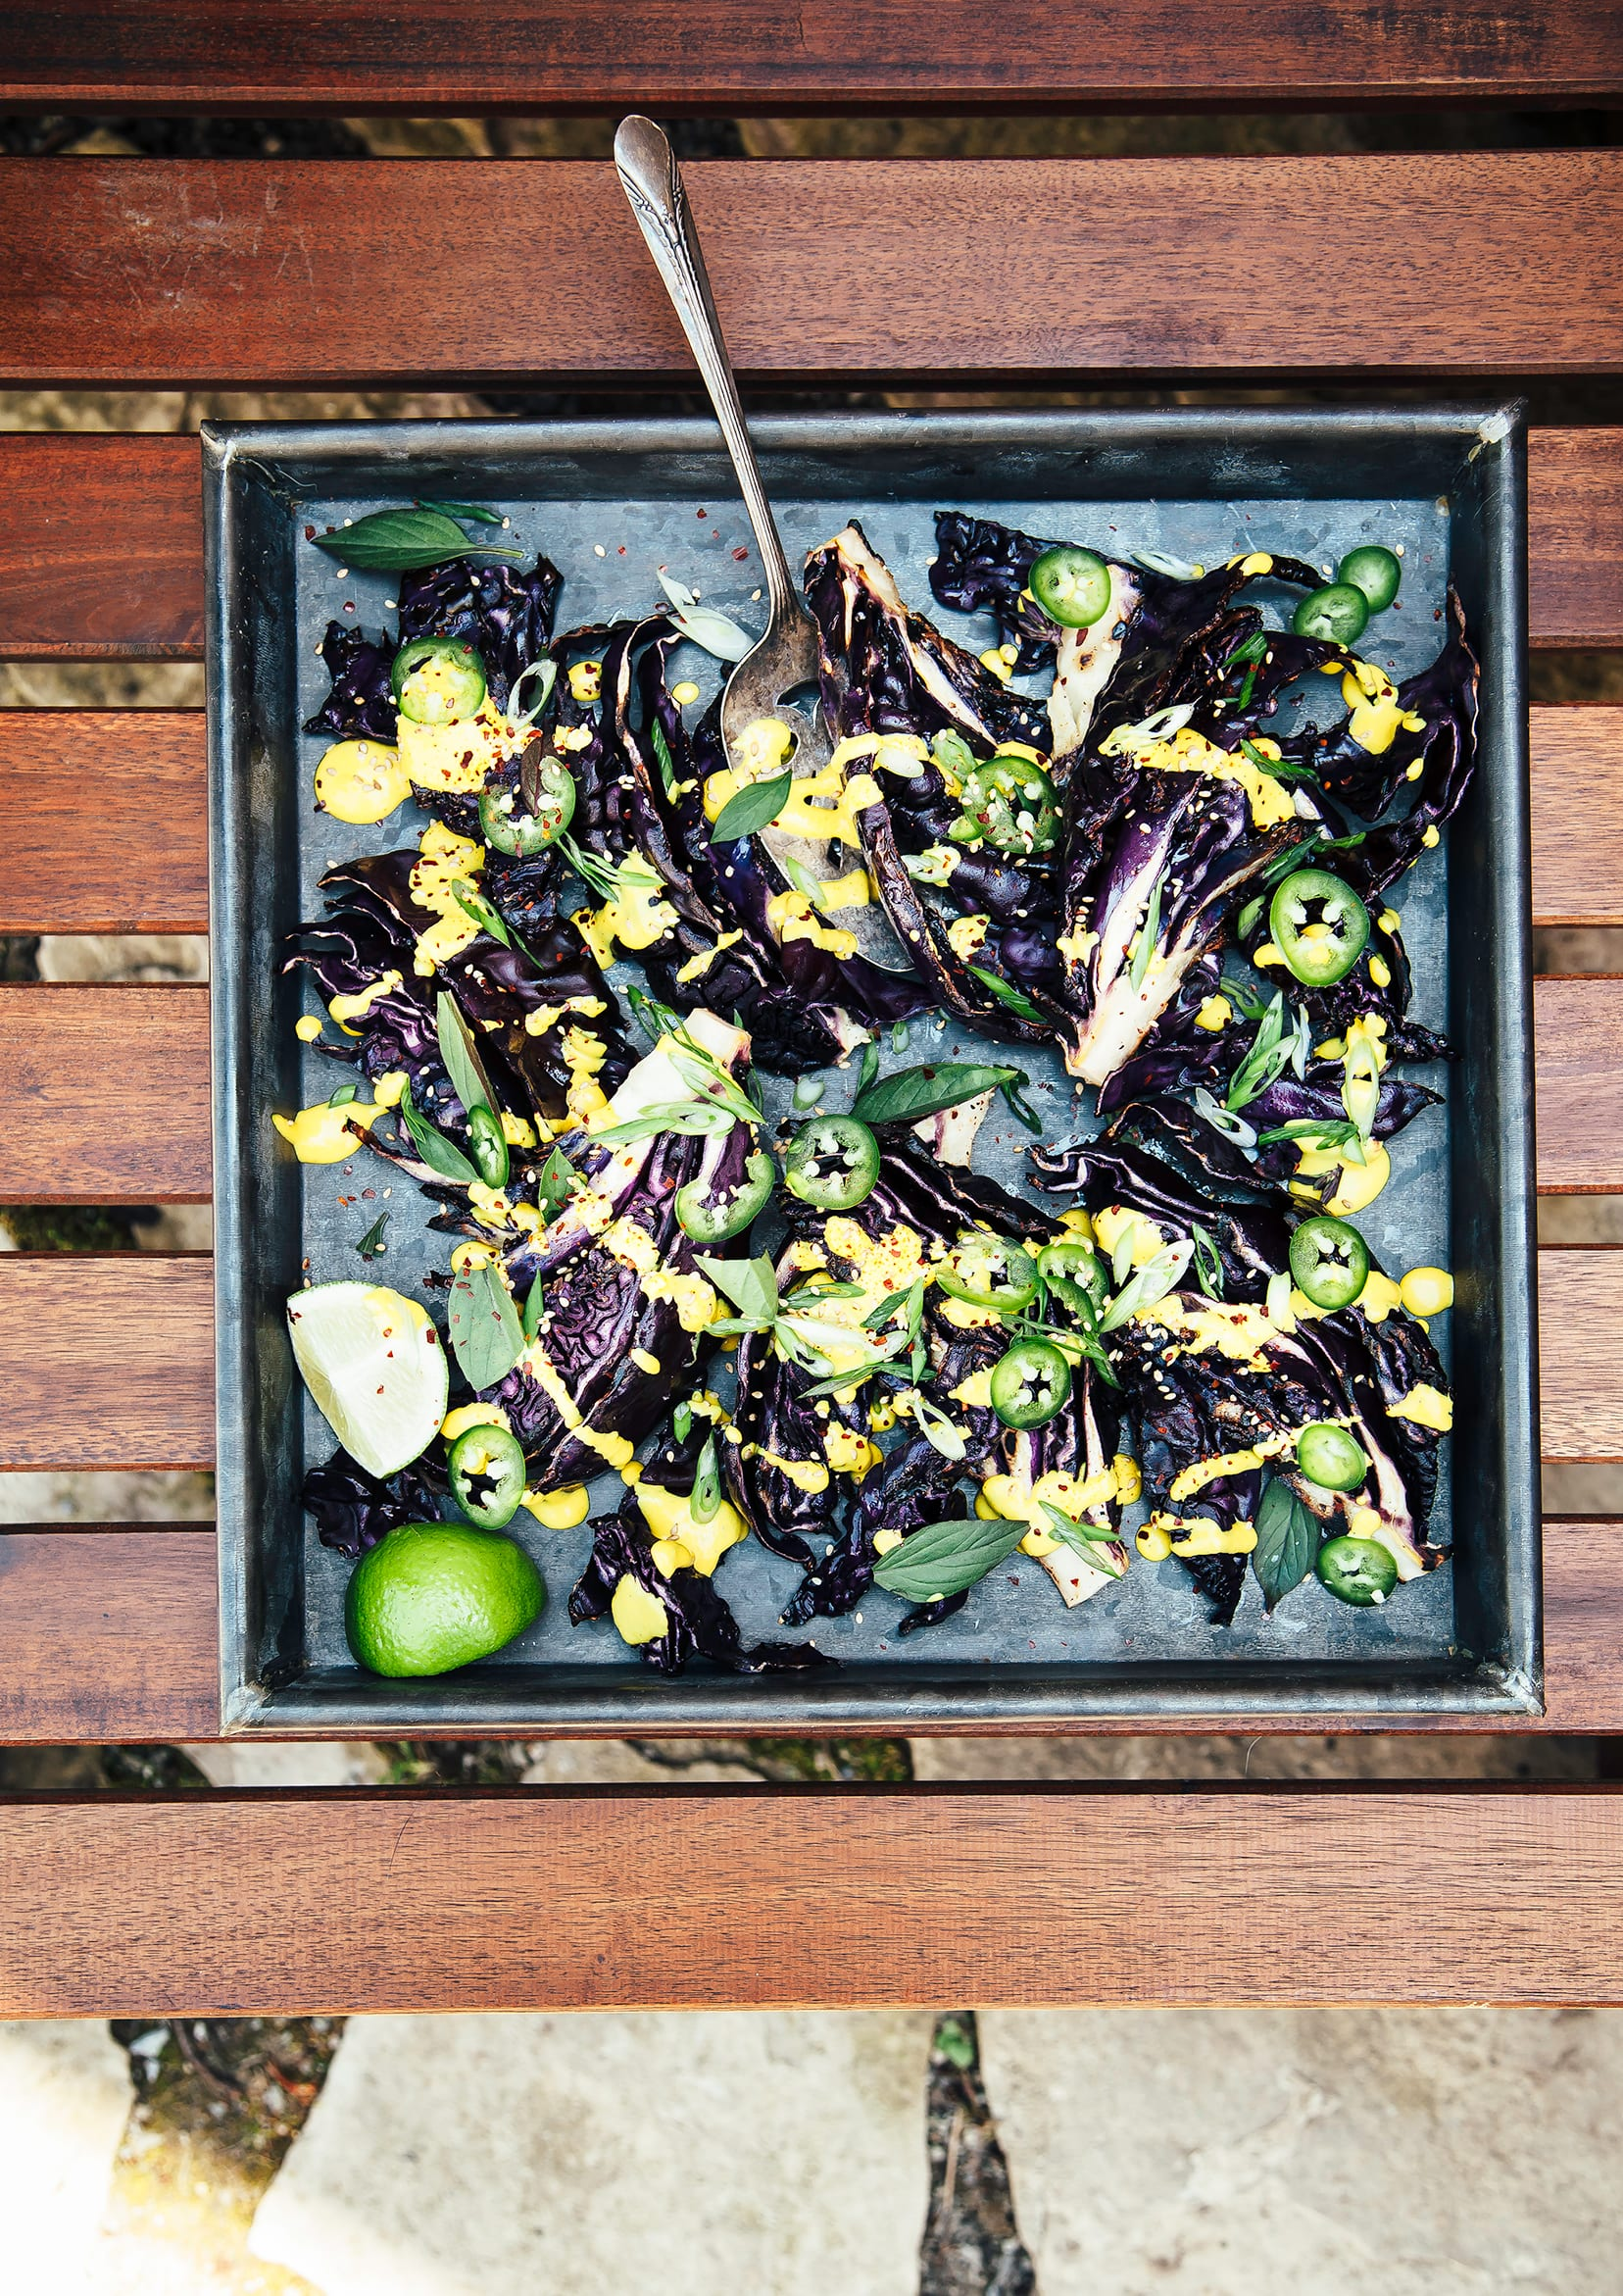 Image shows a dark metal tray with grilled cabbage wedges, drizzled in a creamy bright yellow sauce and topped with chopped herbs and sliced jalapeños .